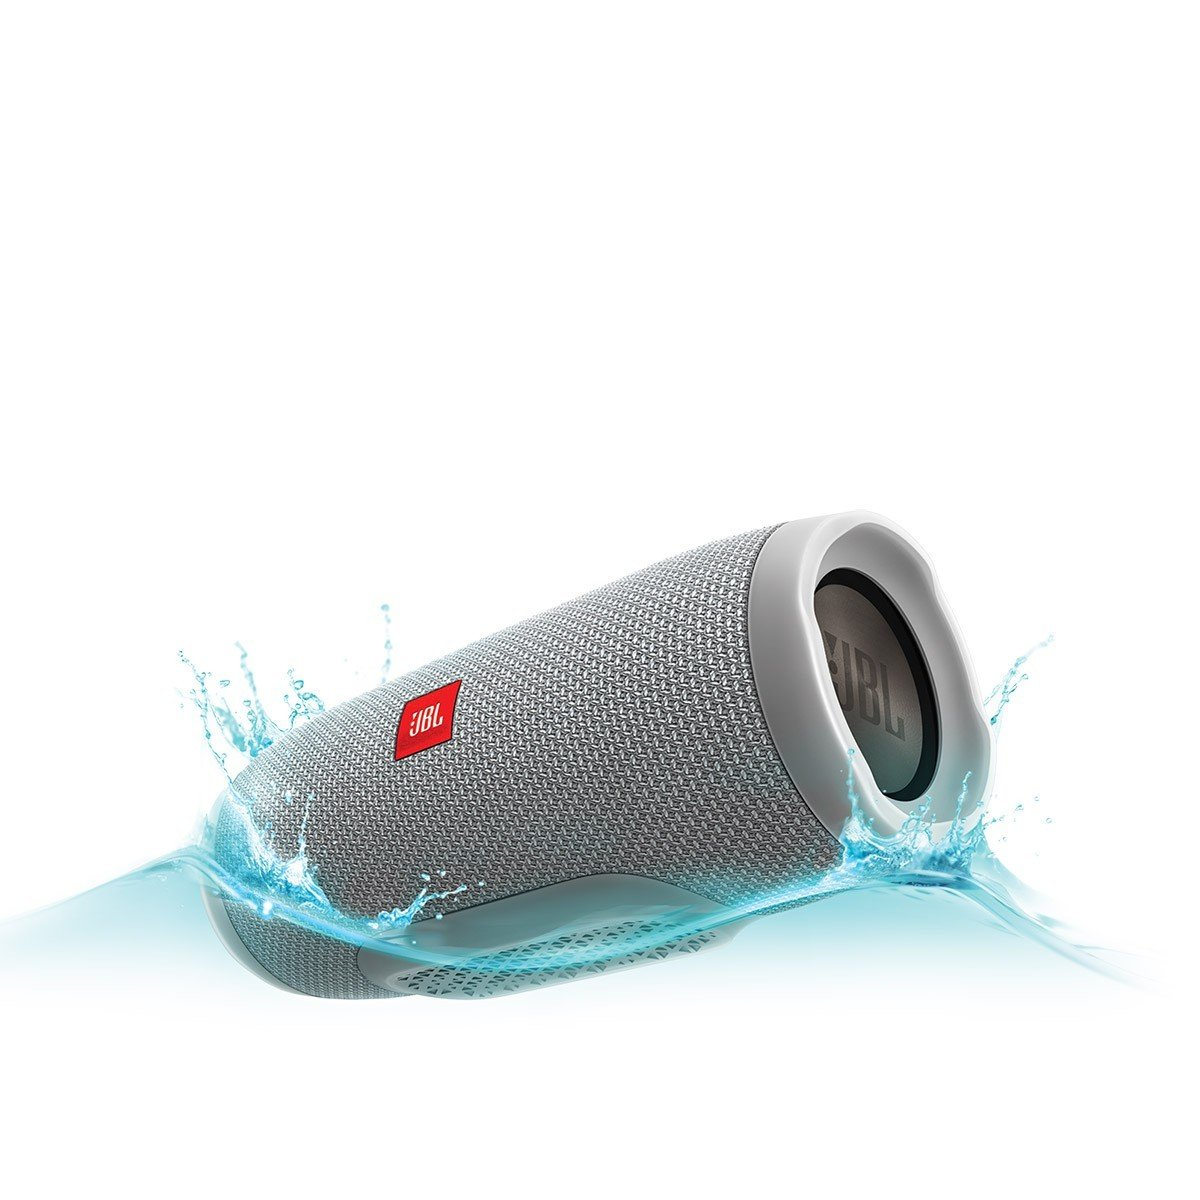 JBL Charge 3 Wireless Portable Speaker, Gray